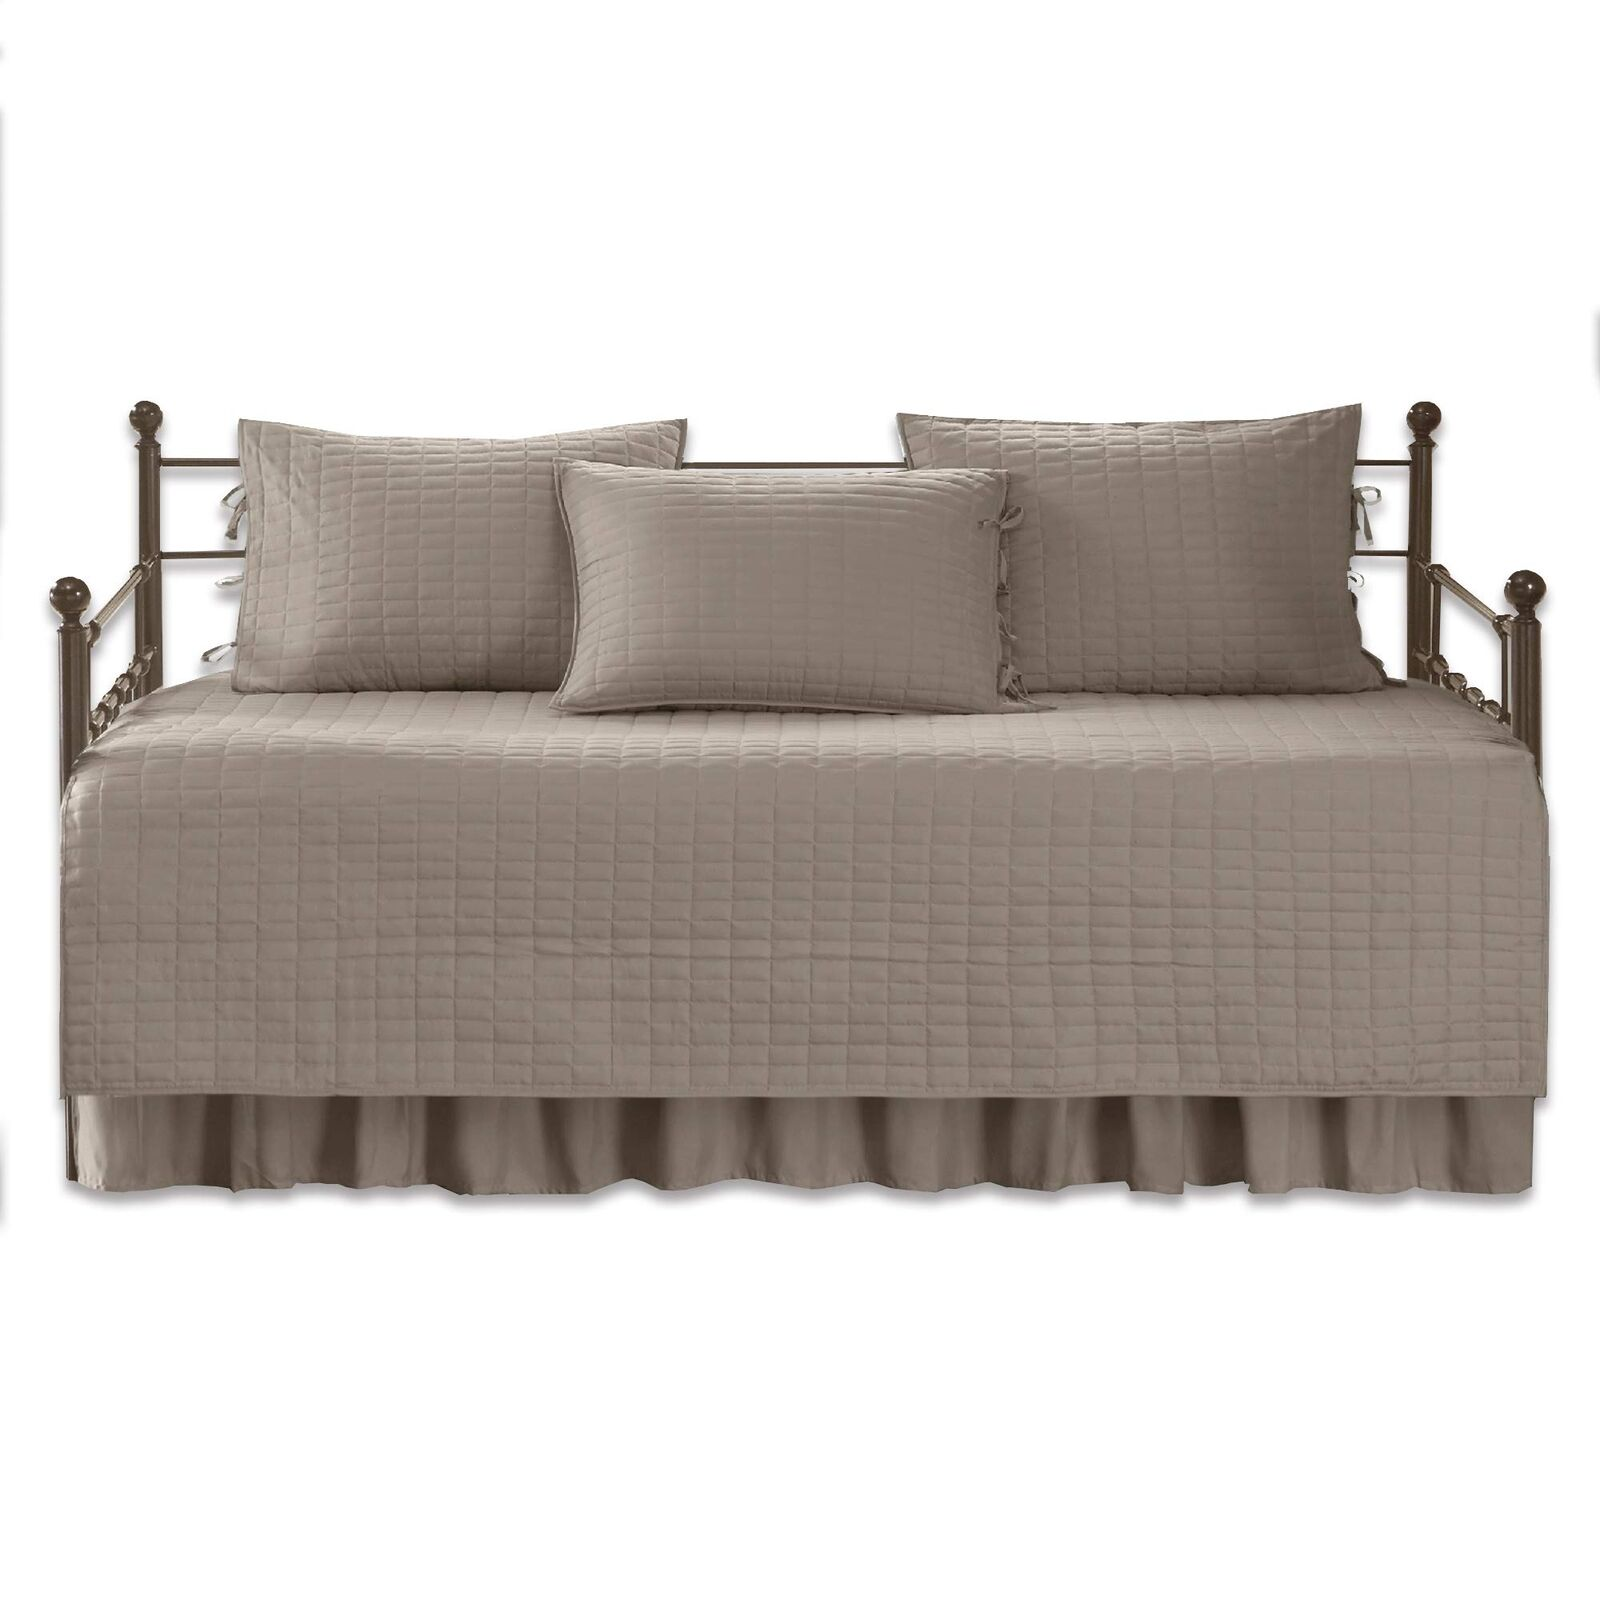 Comfort Spaces - Kienna Daybed Set - Stitched Quilt Pattern - 5 Pieces - Taupe -